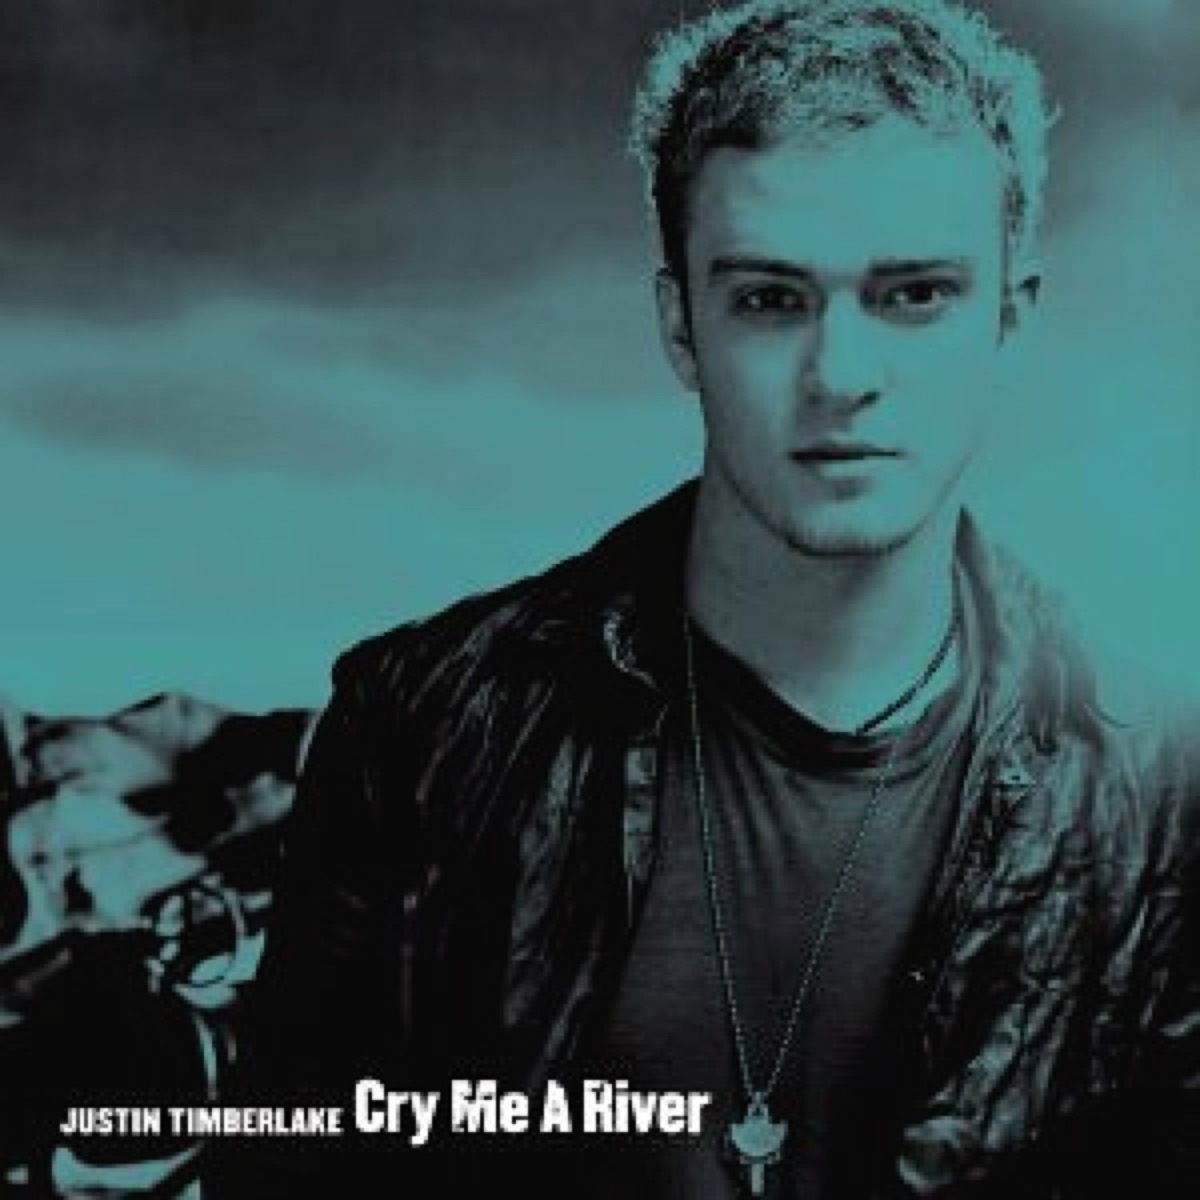 cry me a river cover art justin timberlake, best breakup songs